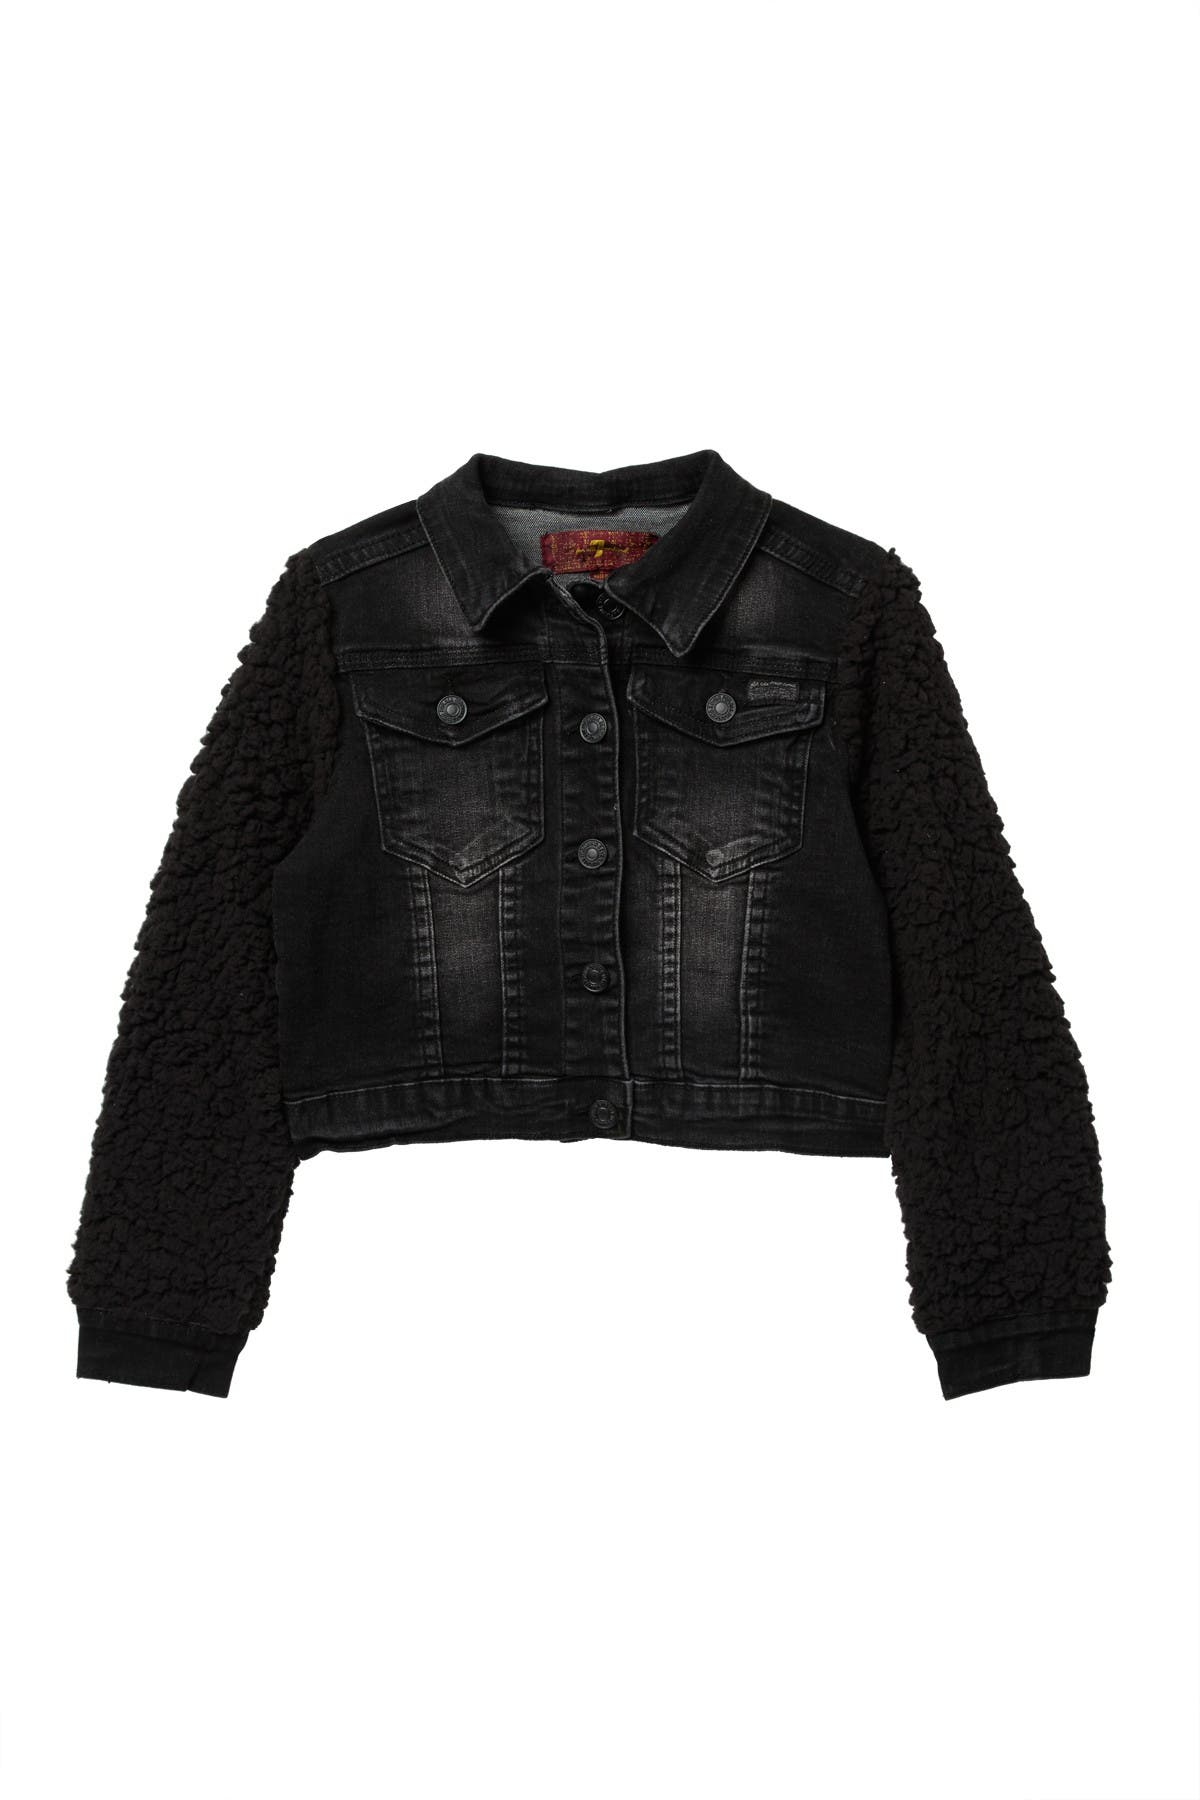 Image of 7 For All Mankind Faux Shearling Cropped Jean Jacket